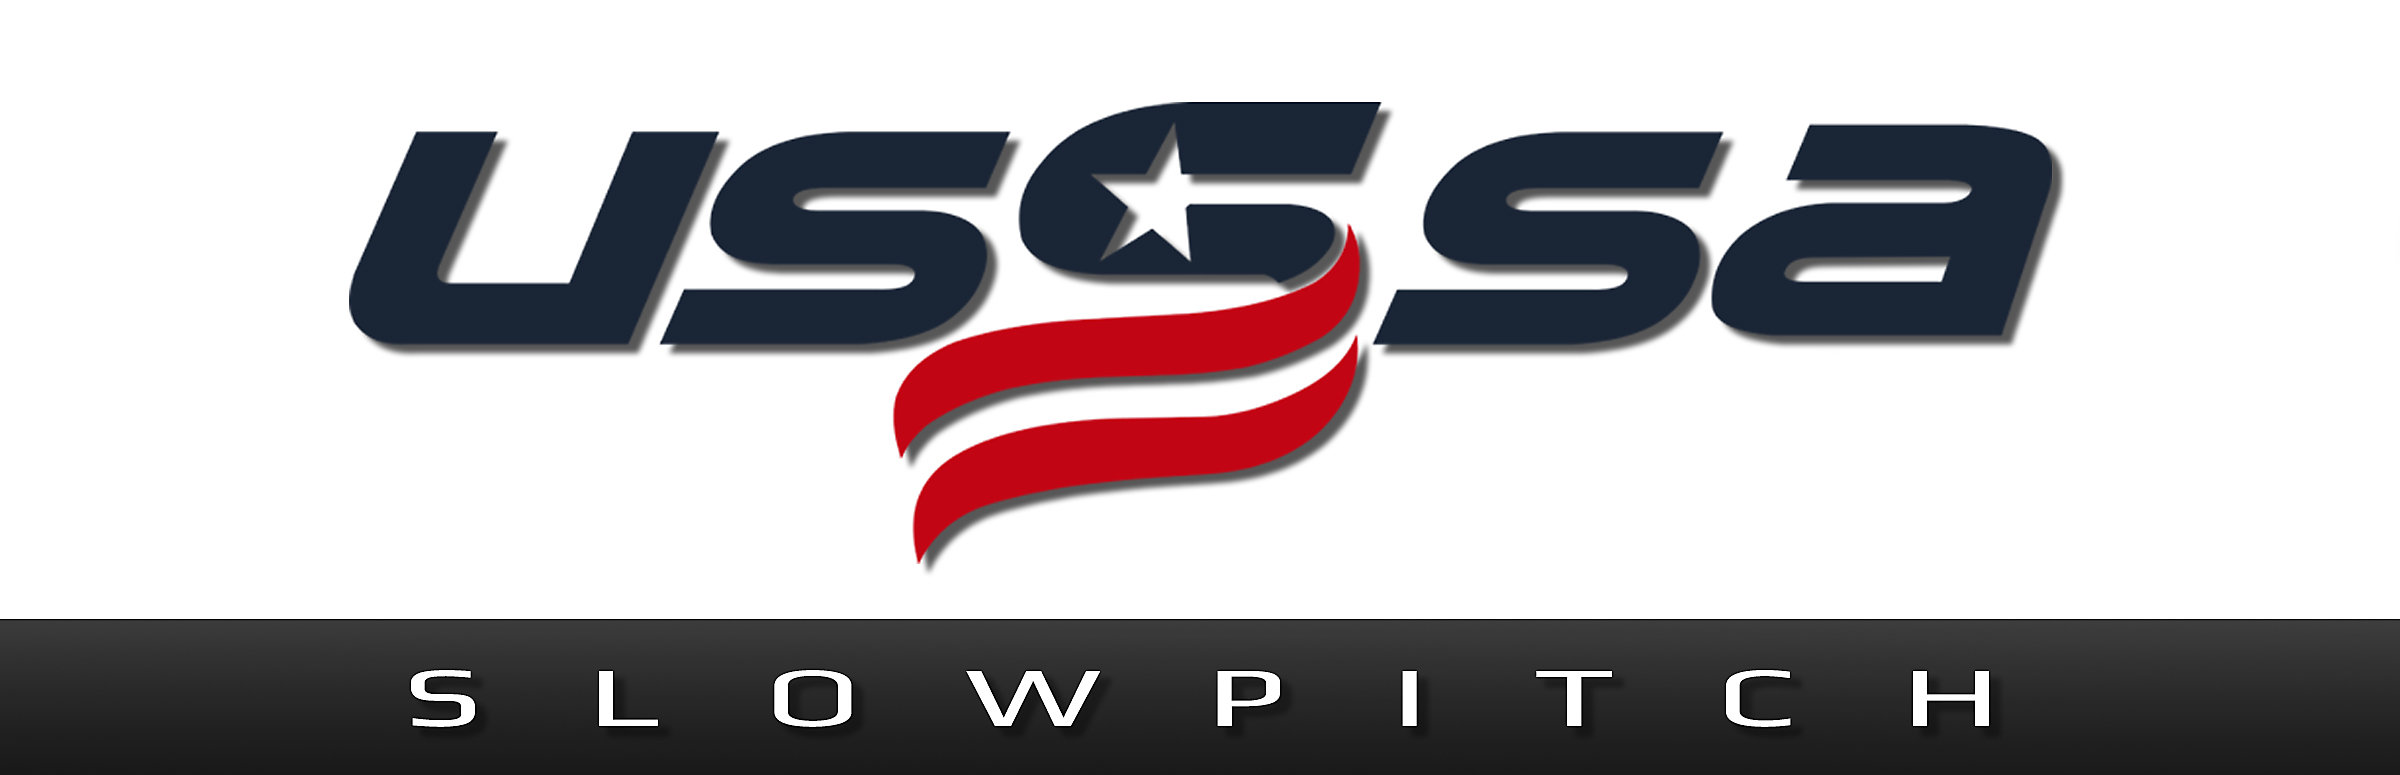 USSSA Slowpitch Umpire Gear: Shop Softball Umpire Gear | Boombah